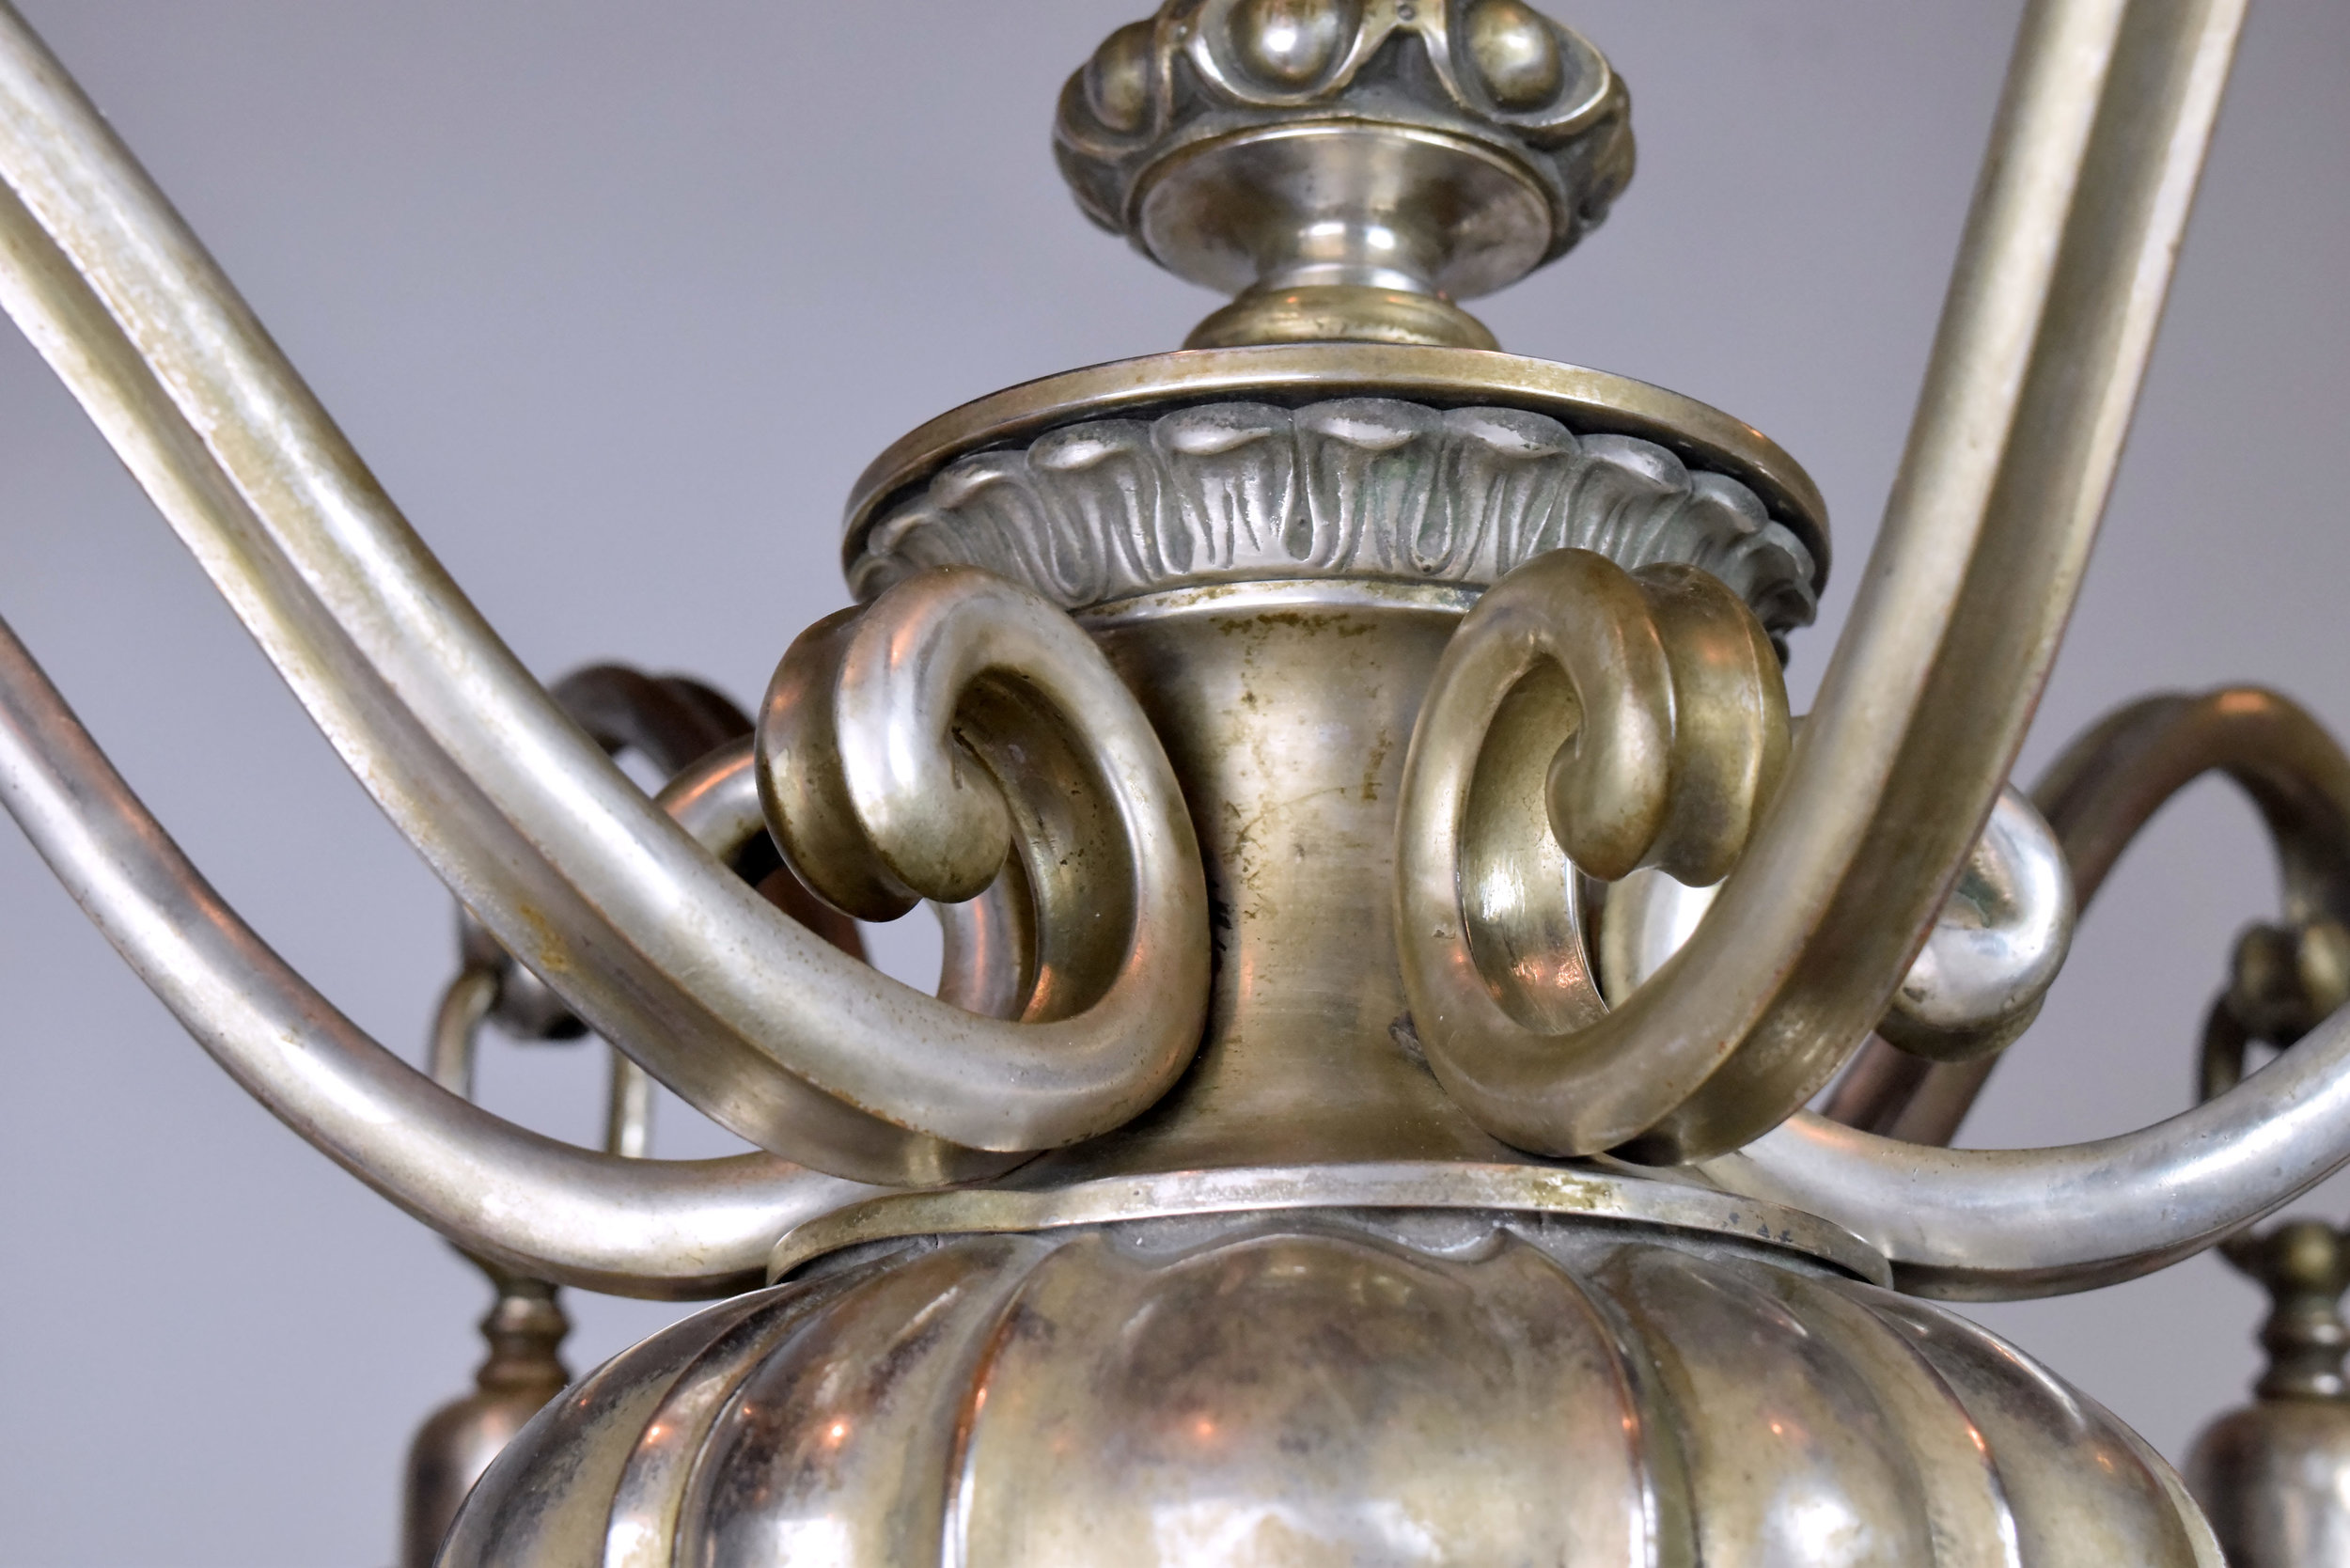 47533-silver-plated-six-arm-chandelier-more-body-detail.jpg